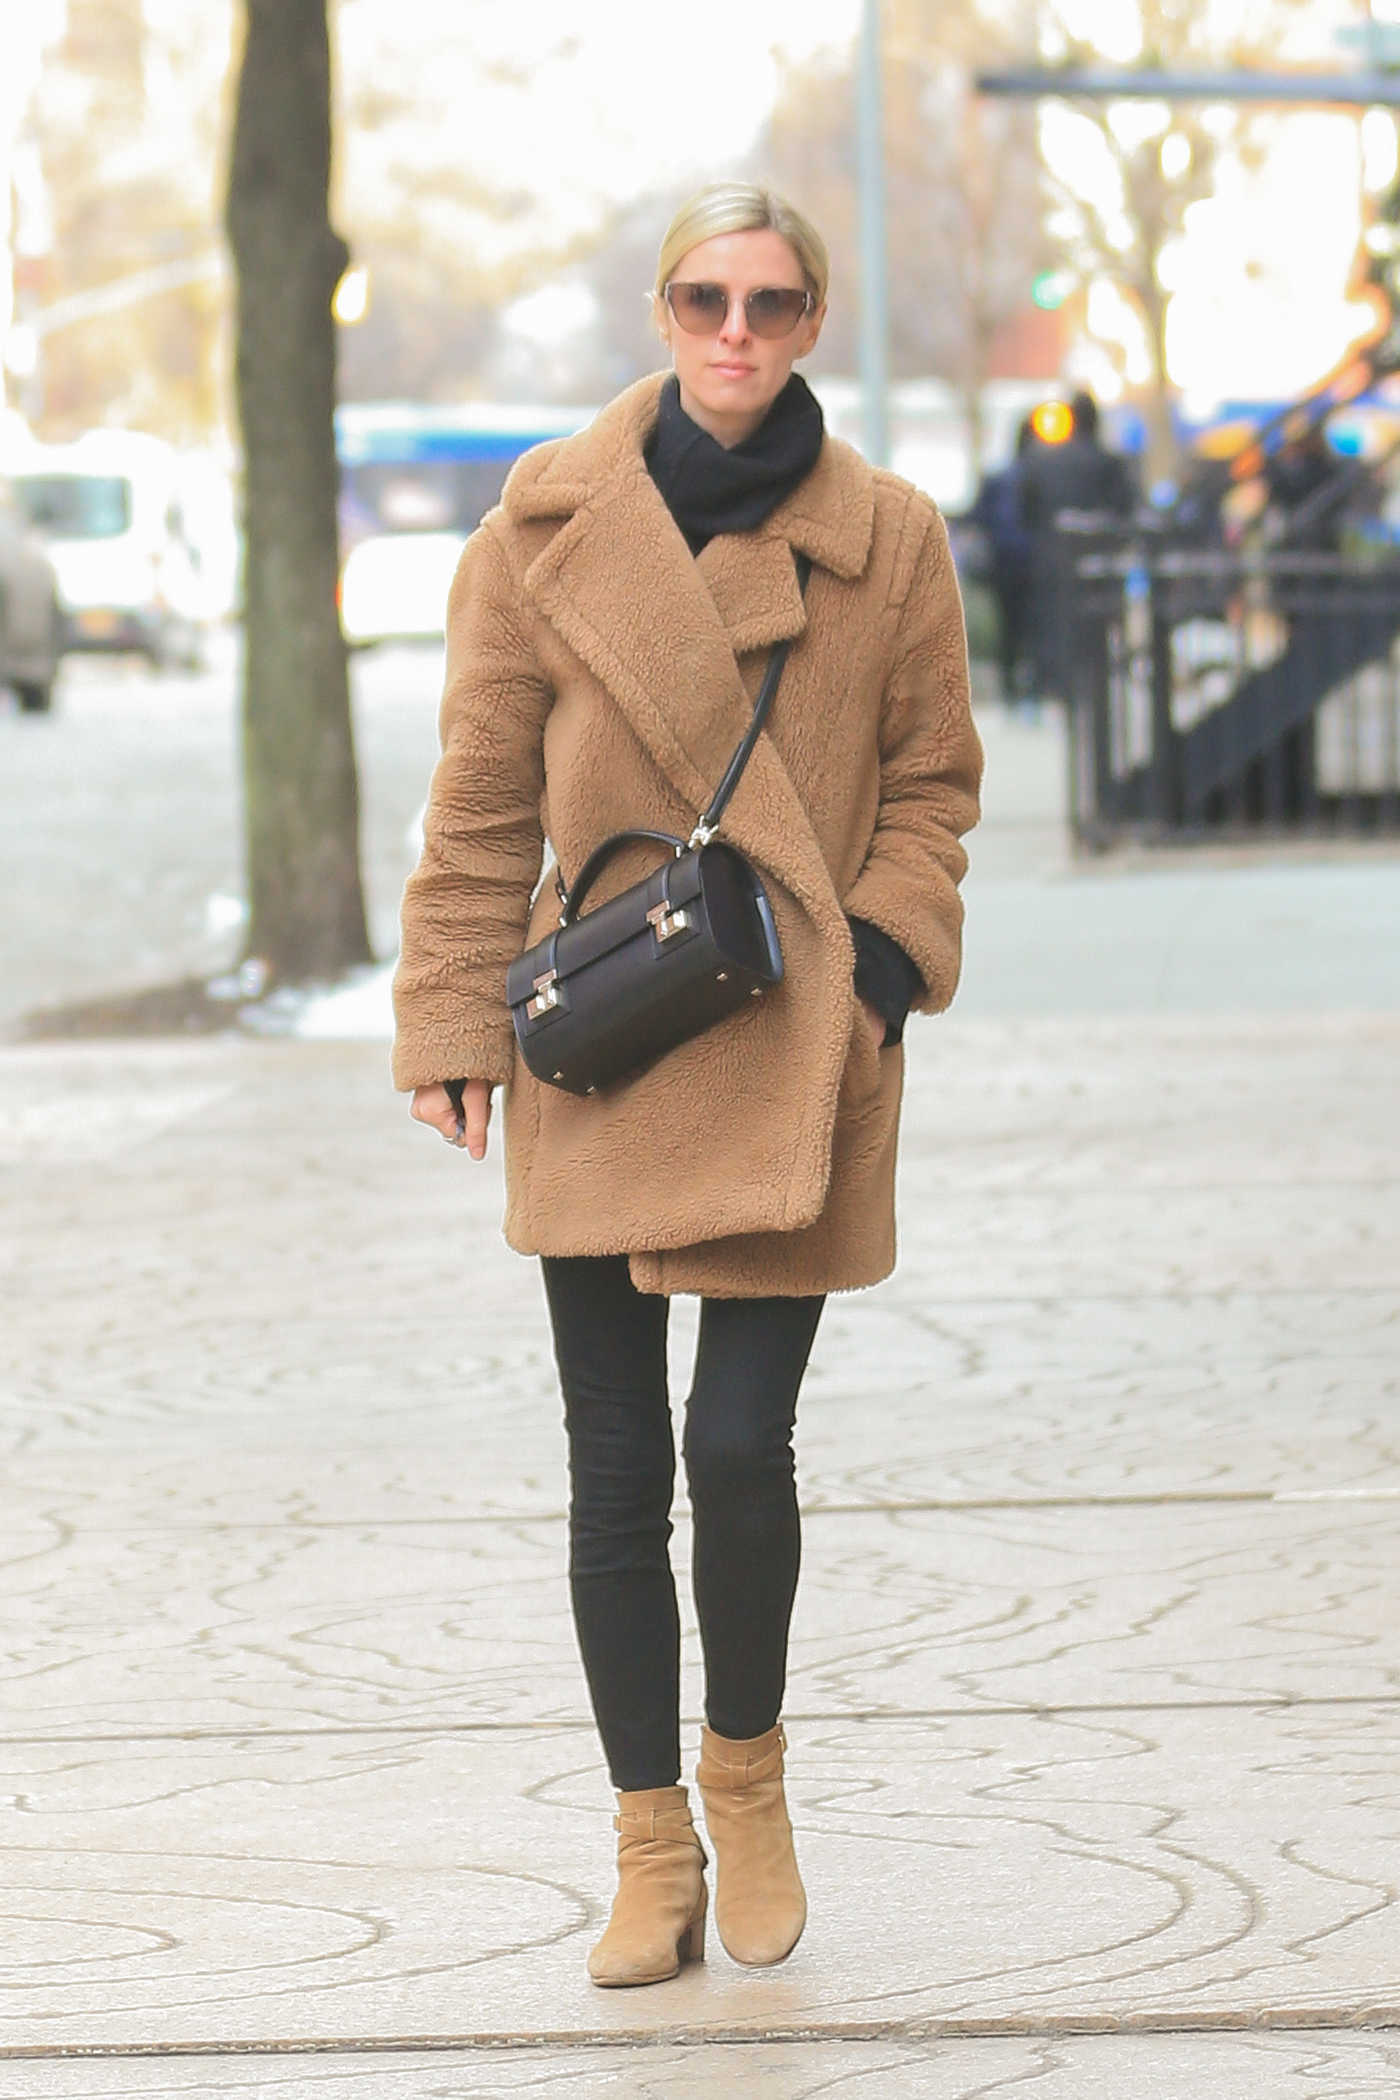 Nicky Hilton in a Beige Fur Coat Was Seen Out in New York 03/07/2019